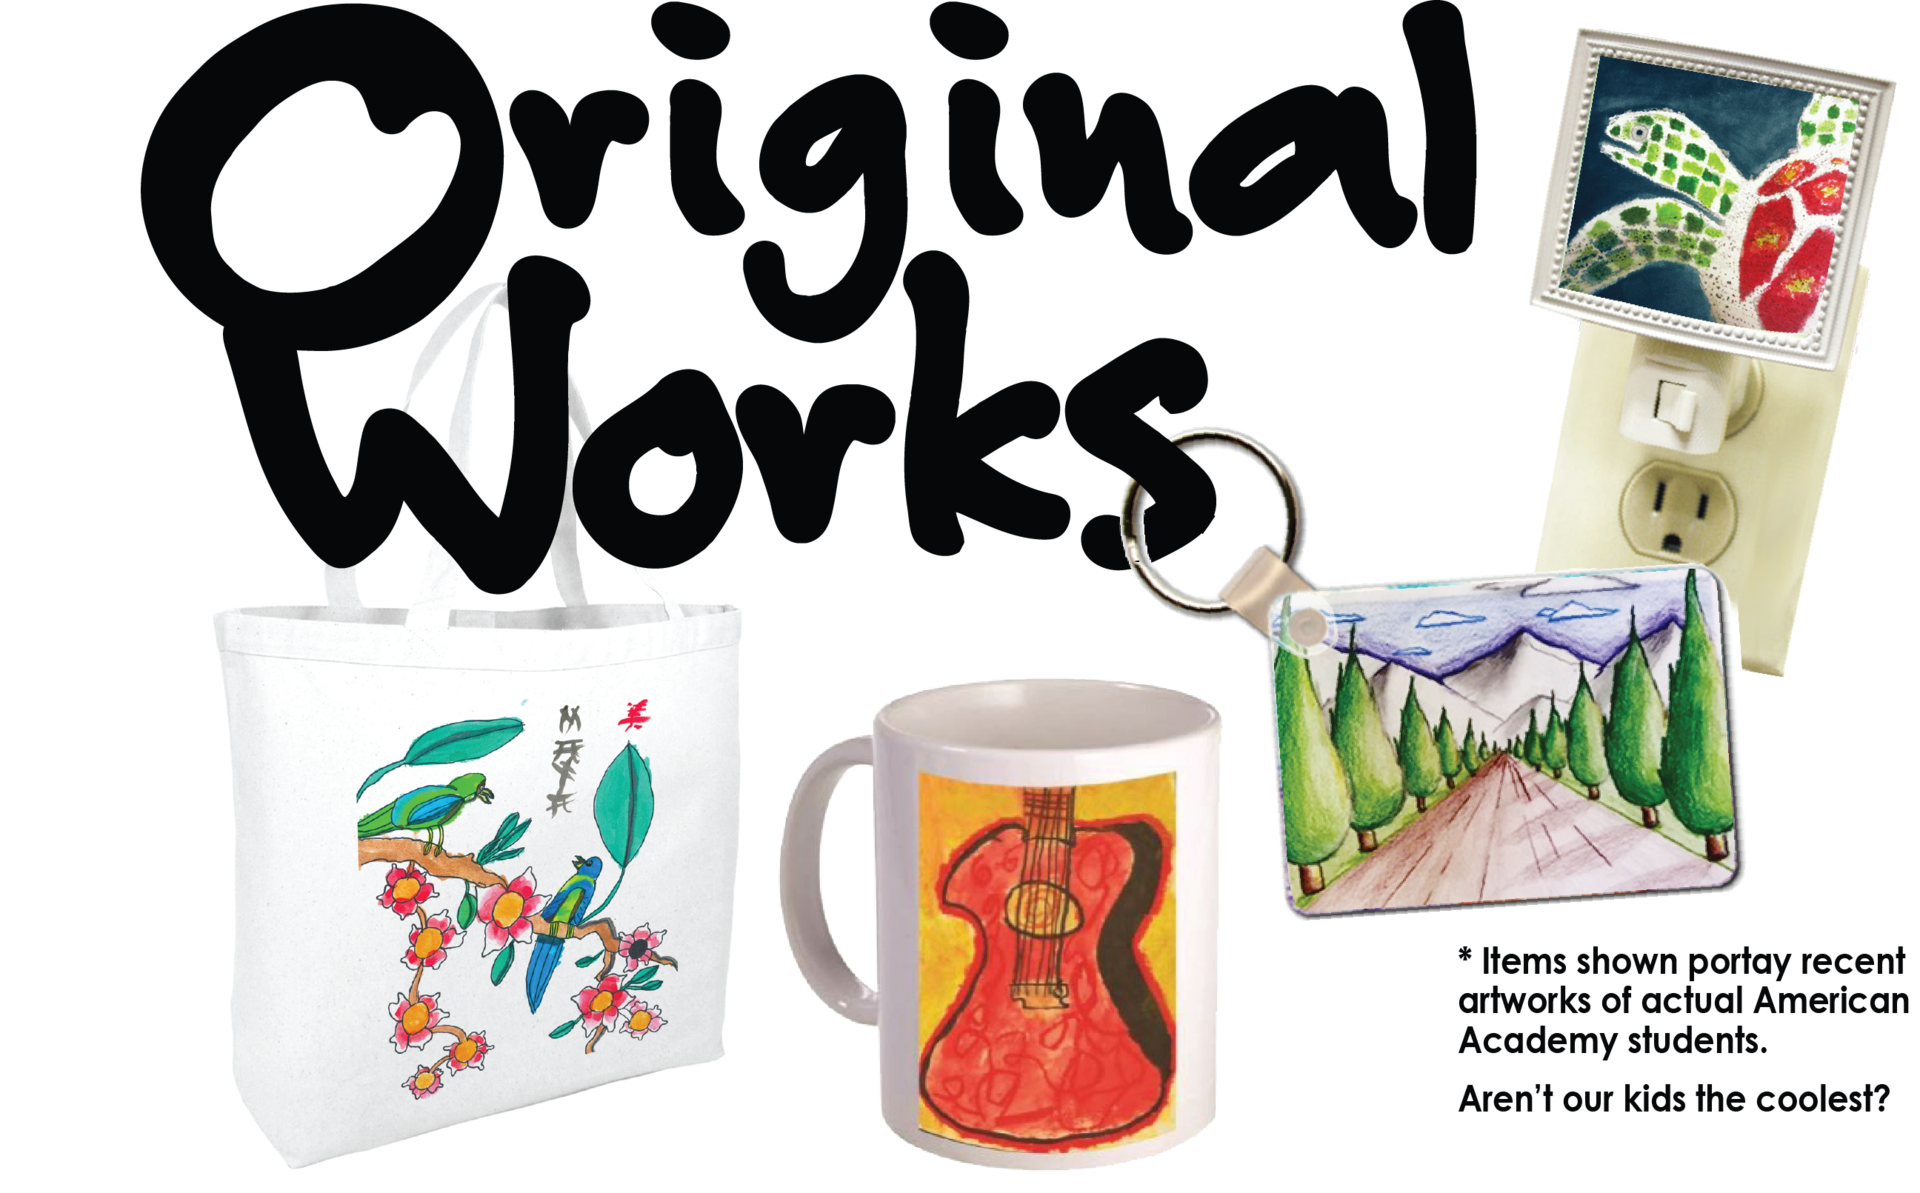 An Original Works art fundraiser graphic displaying various products like coffee mugs, sketchbooks, and tote bags, all adorned with prints of student artworks